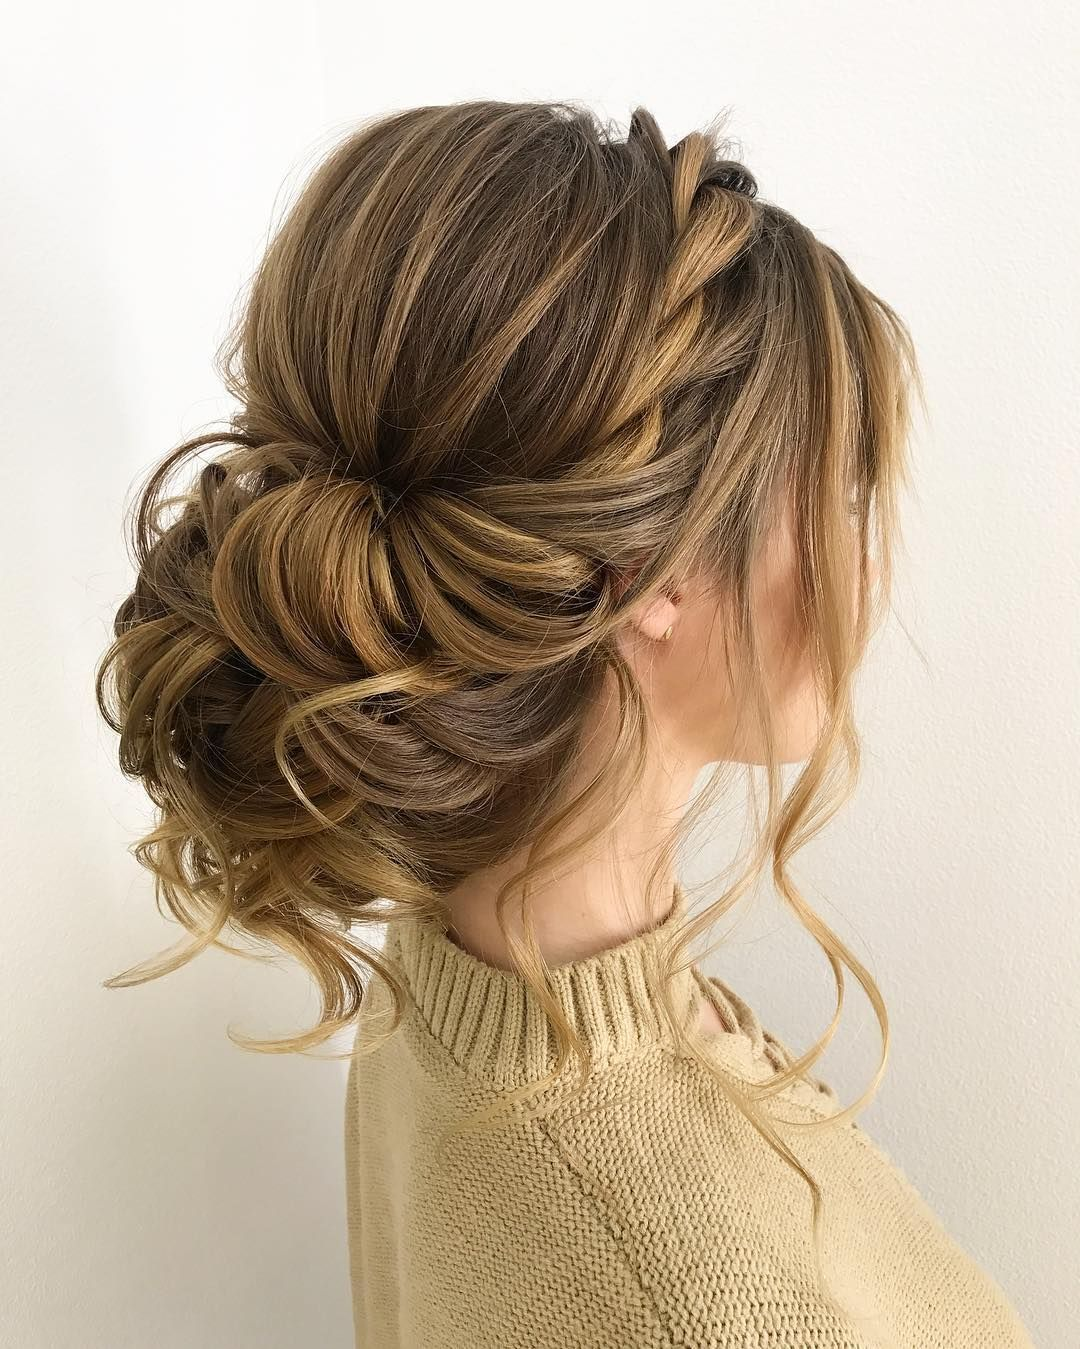 Braided Wedding Hair: Gorgeous Wedding Updo Hairstyles That Will Wow Your Big